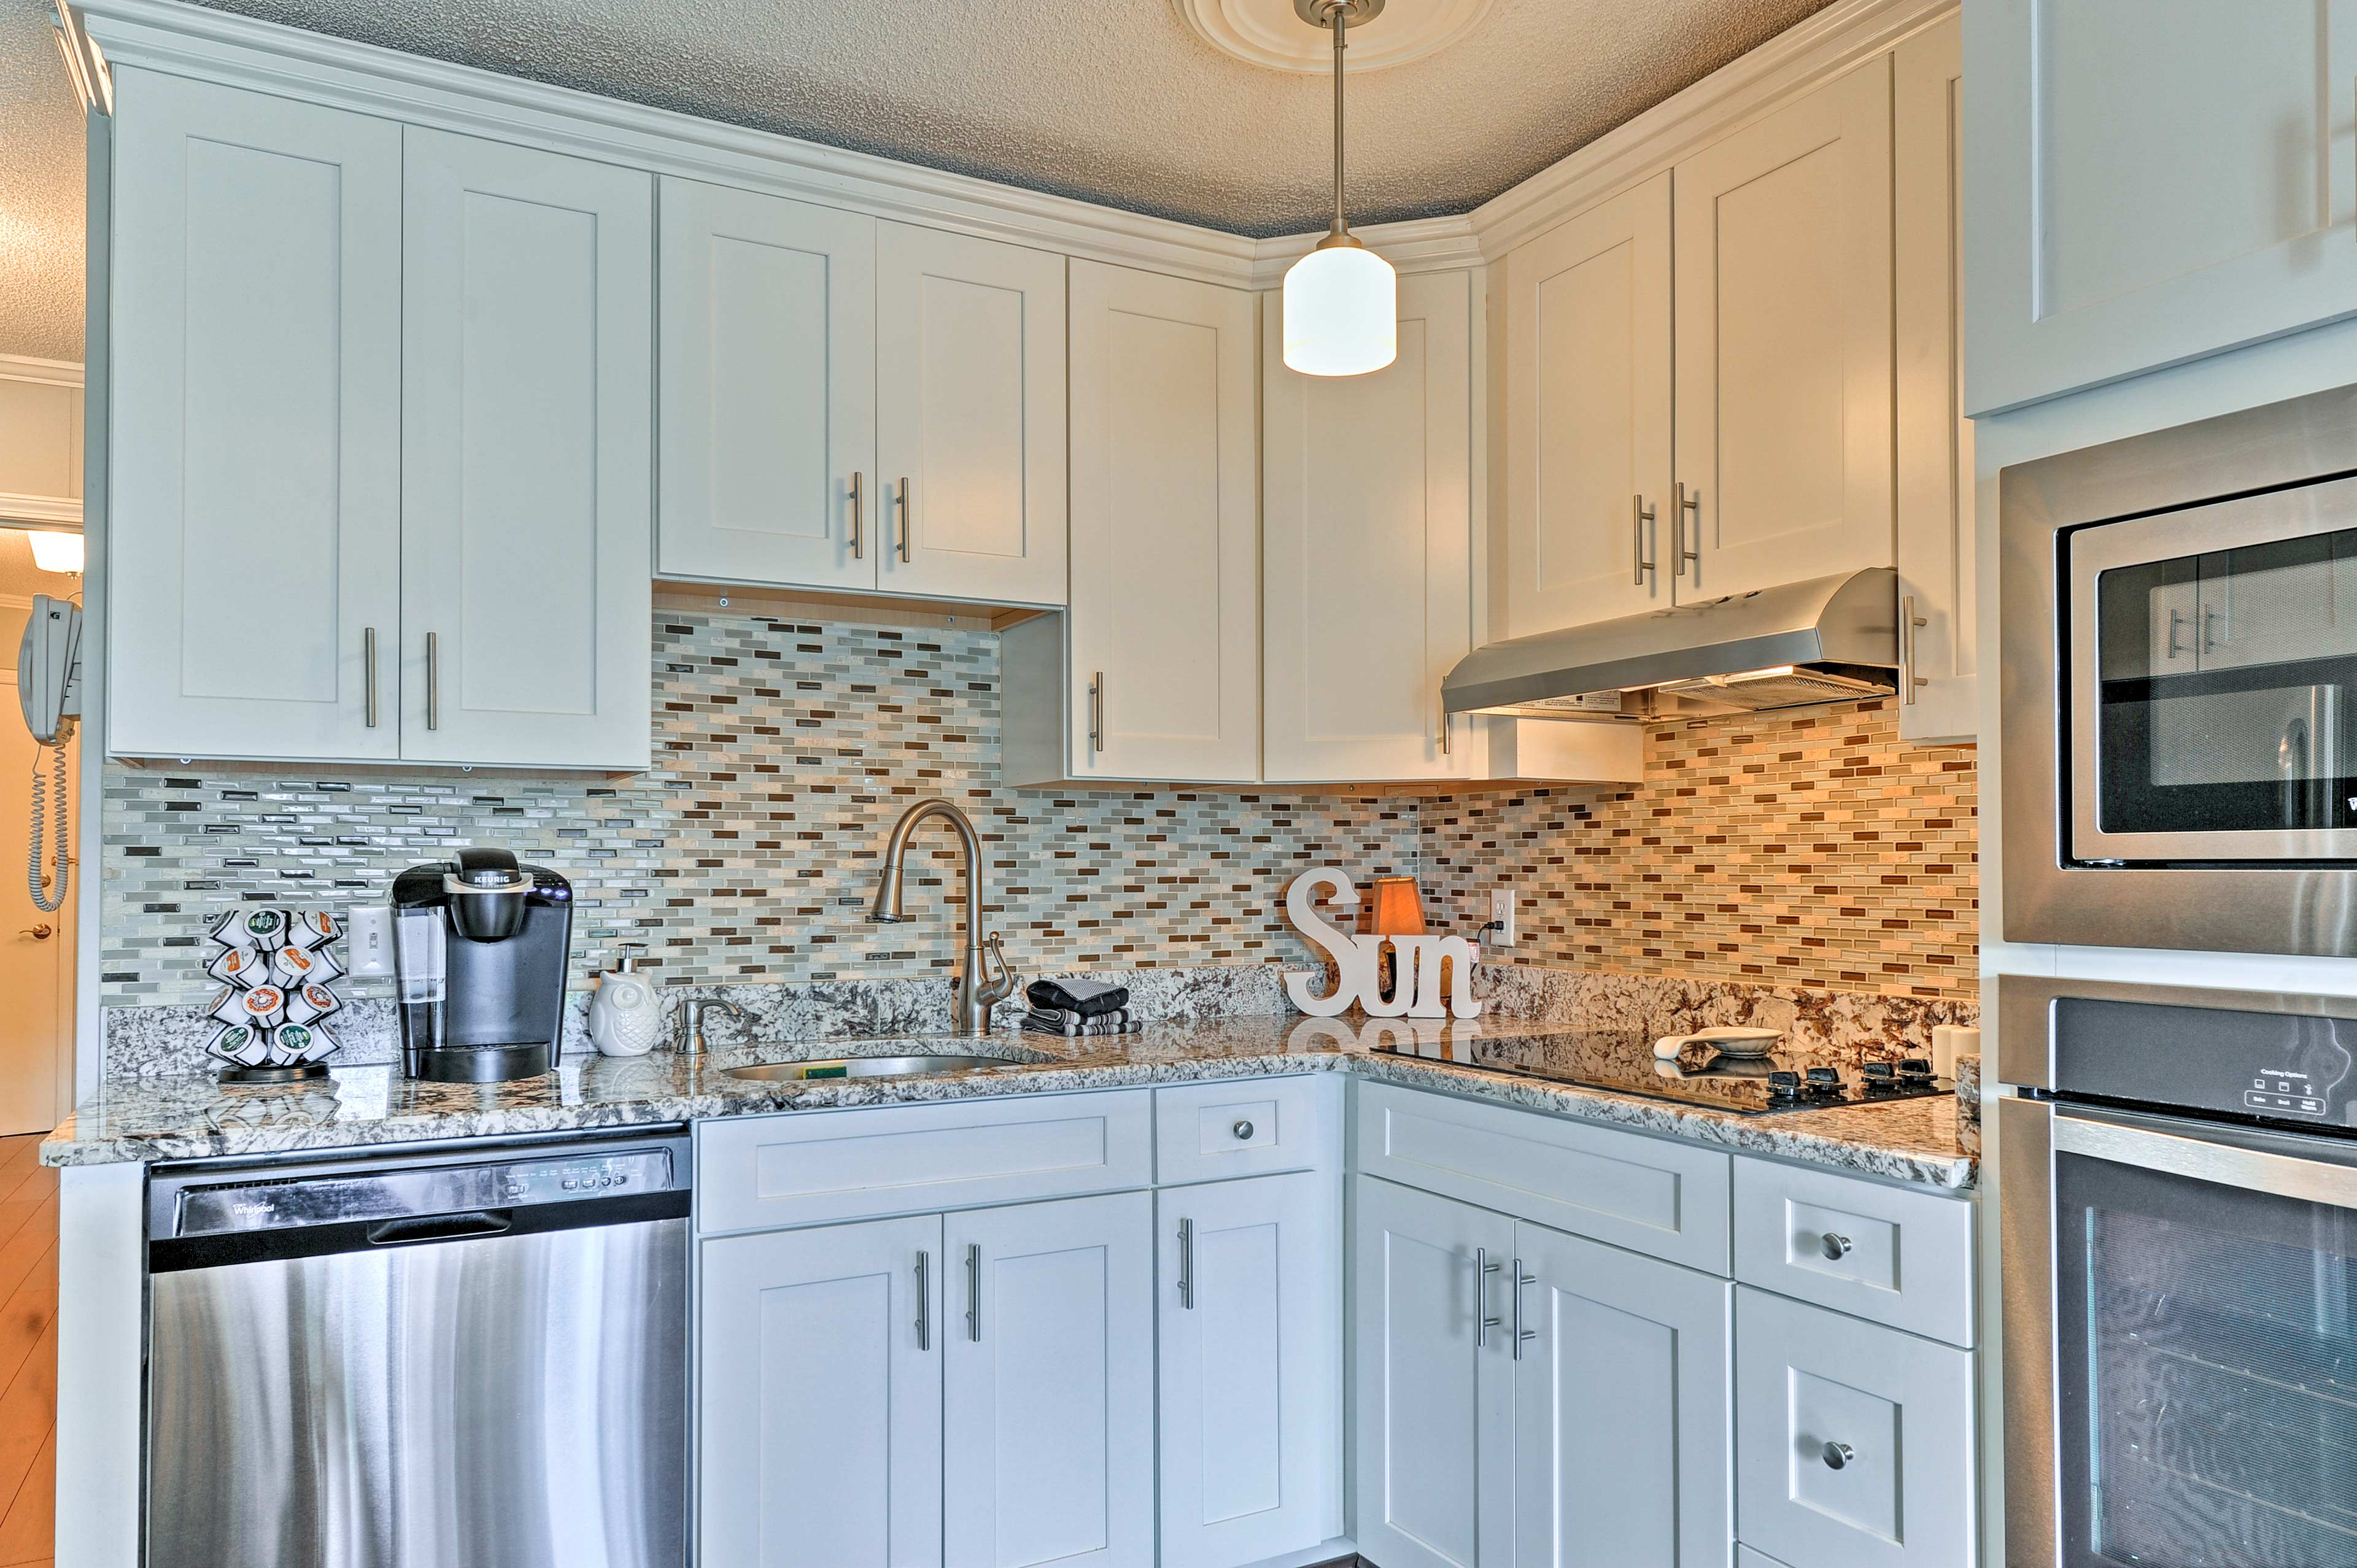 Kitchen | Stainless Steel Appliances | Cooking Basics